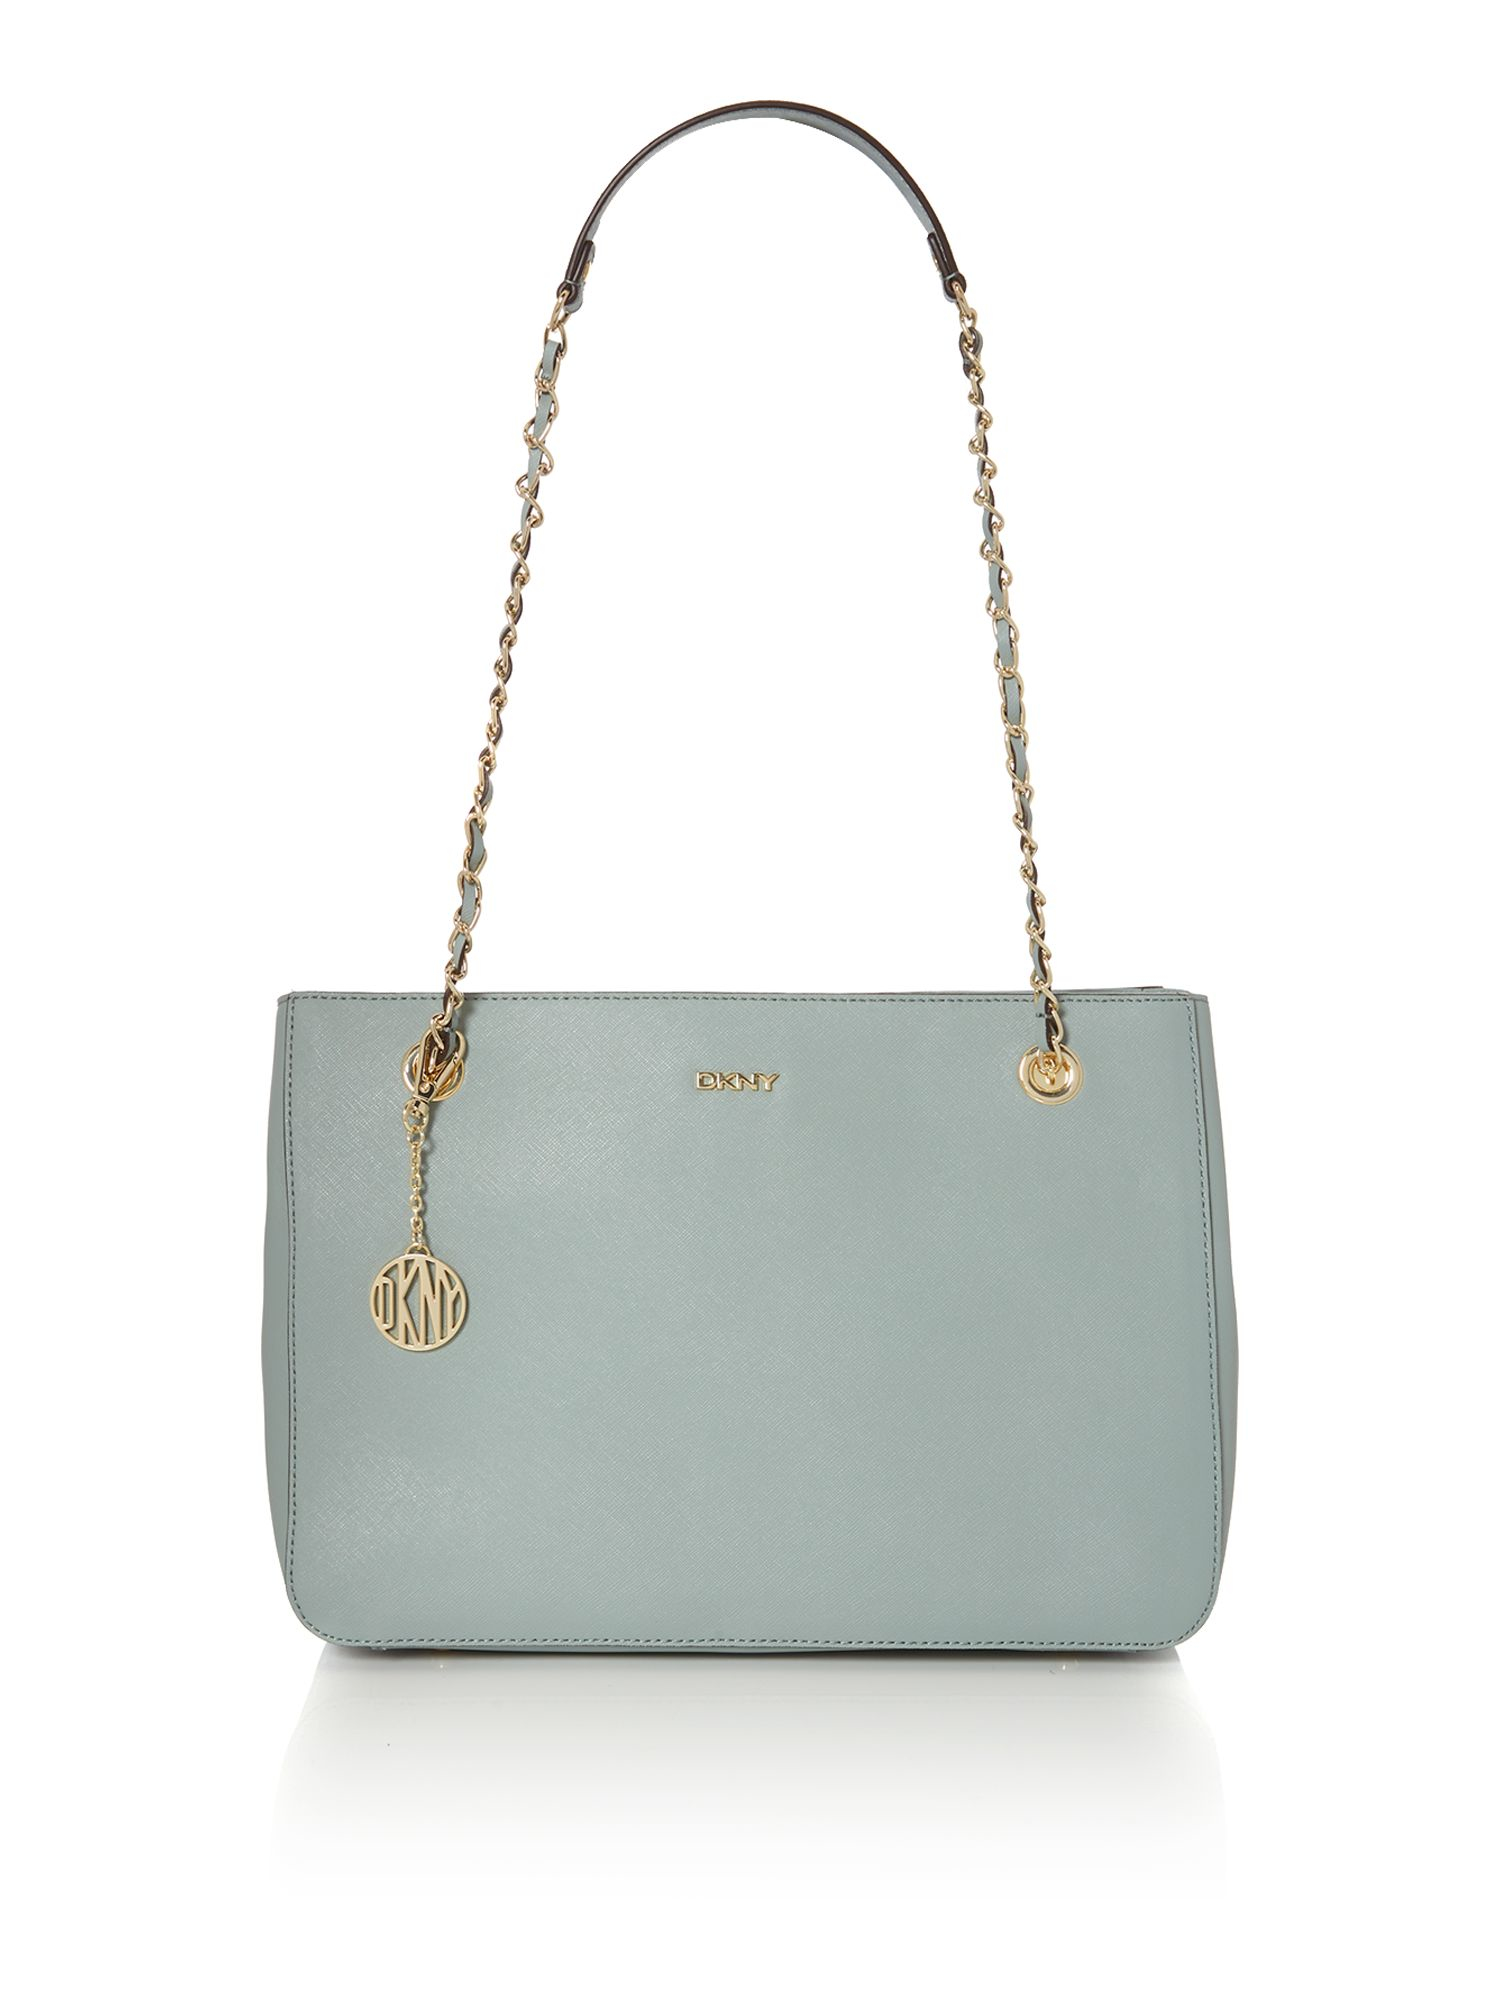 DKNY Saffiano Light Blue Medium Tote Bag